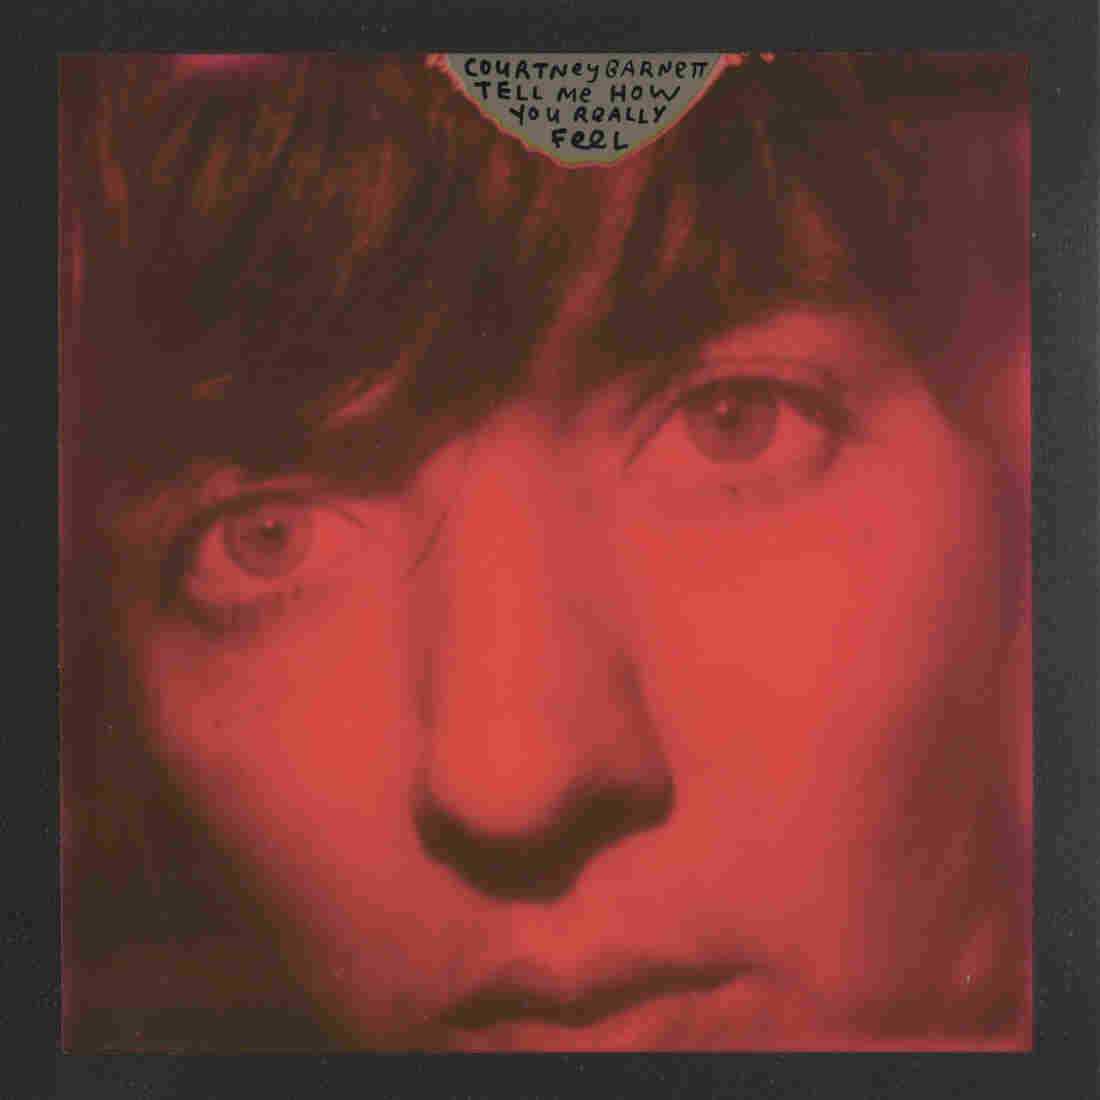 Courtney Barnett, Tell Me What You Really Think